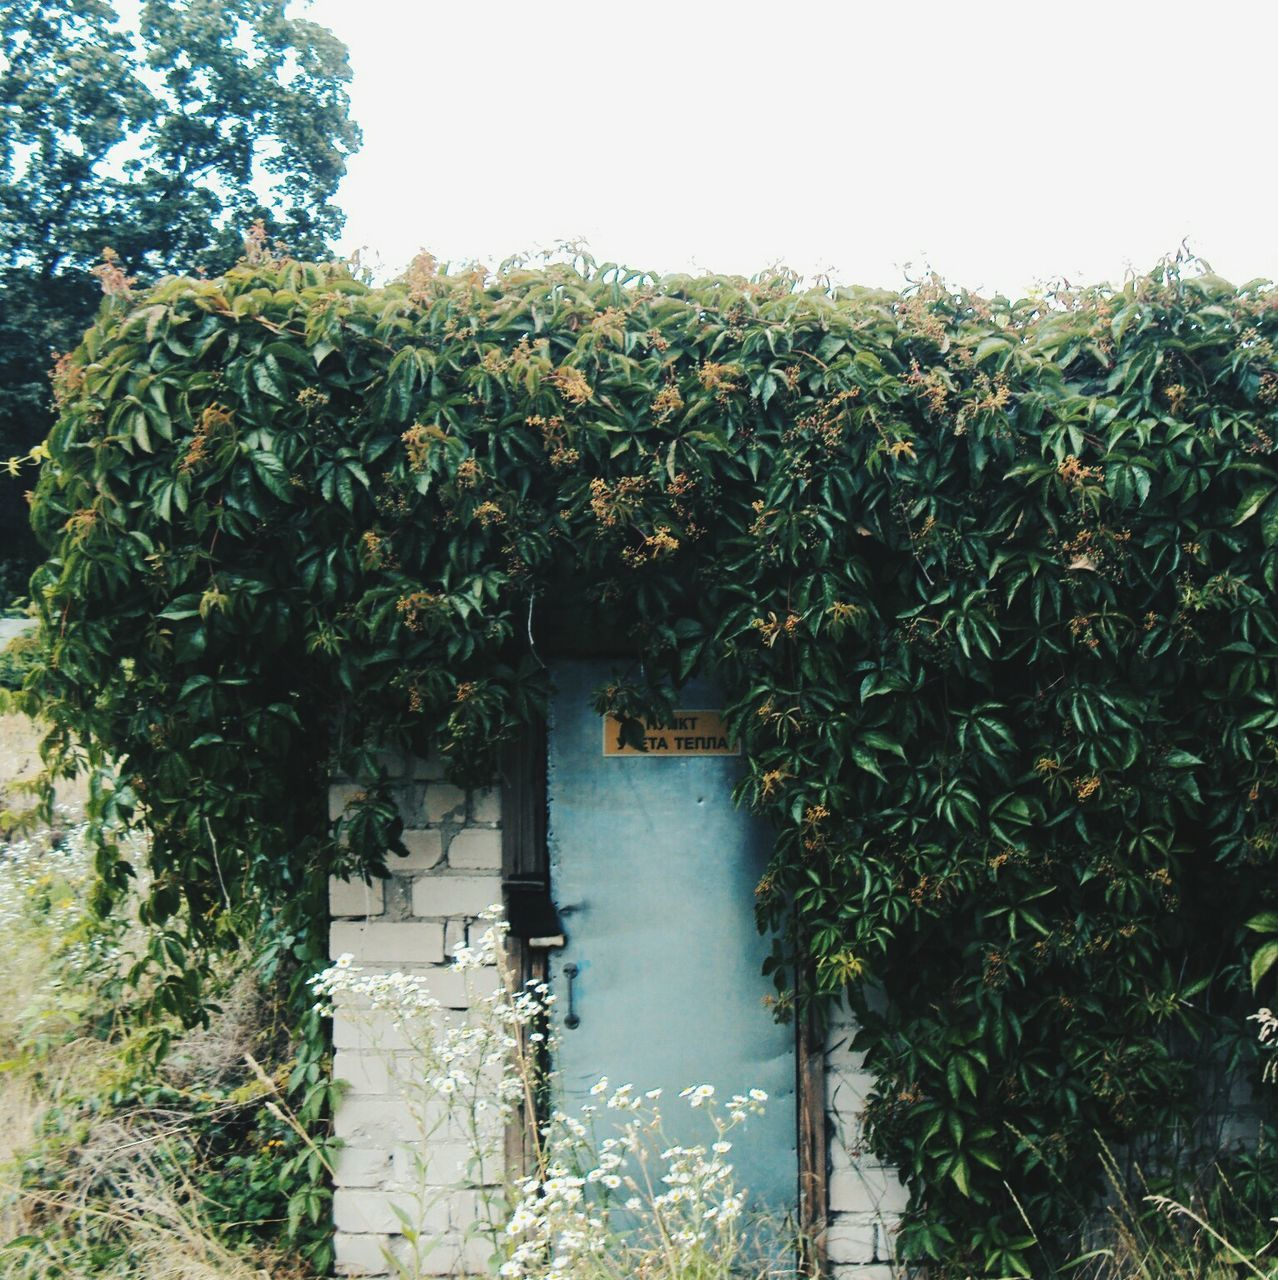 growth, plant, nature, leaf, tree, green color, day, outdoors, growing, ivy, no people, green, built structure, architecture, clear sky, creeper plant, beauty in nature, scenics, sky, building exterior, freshness